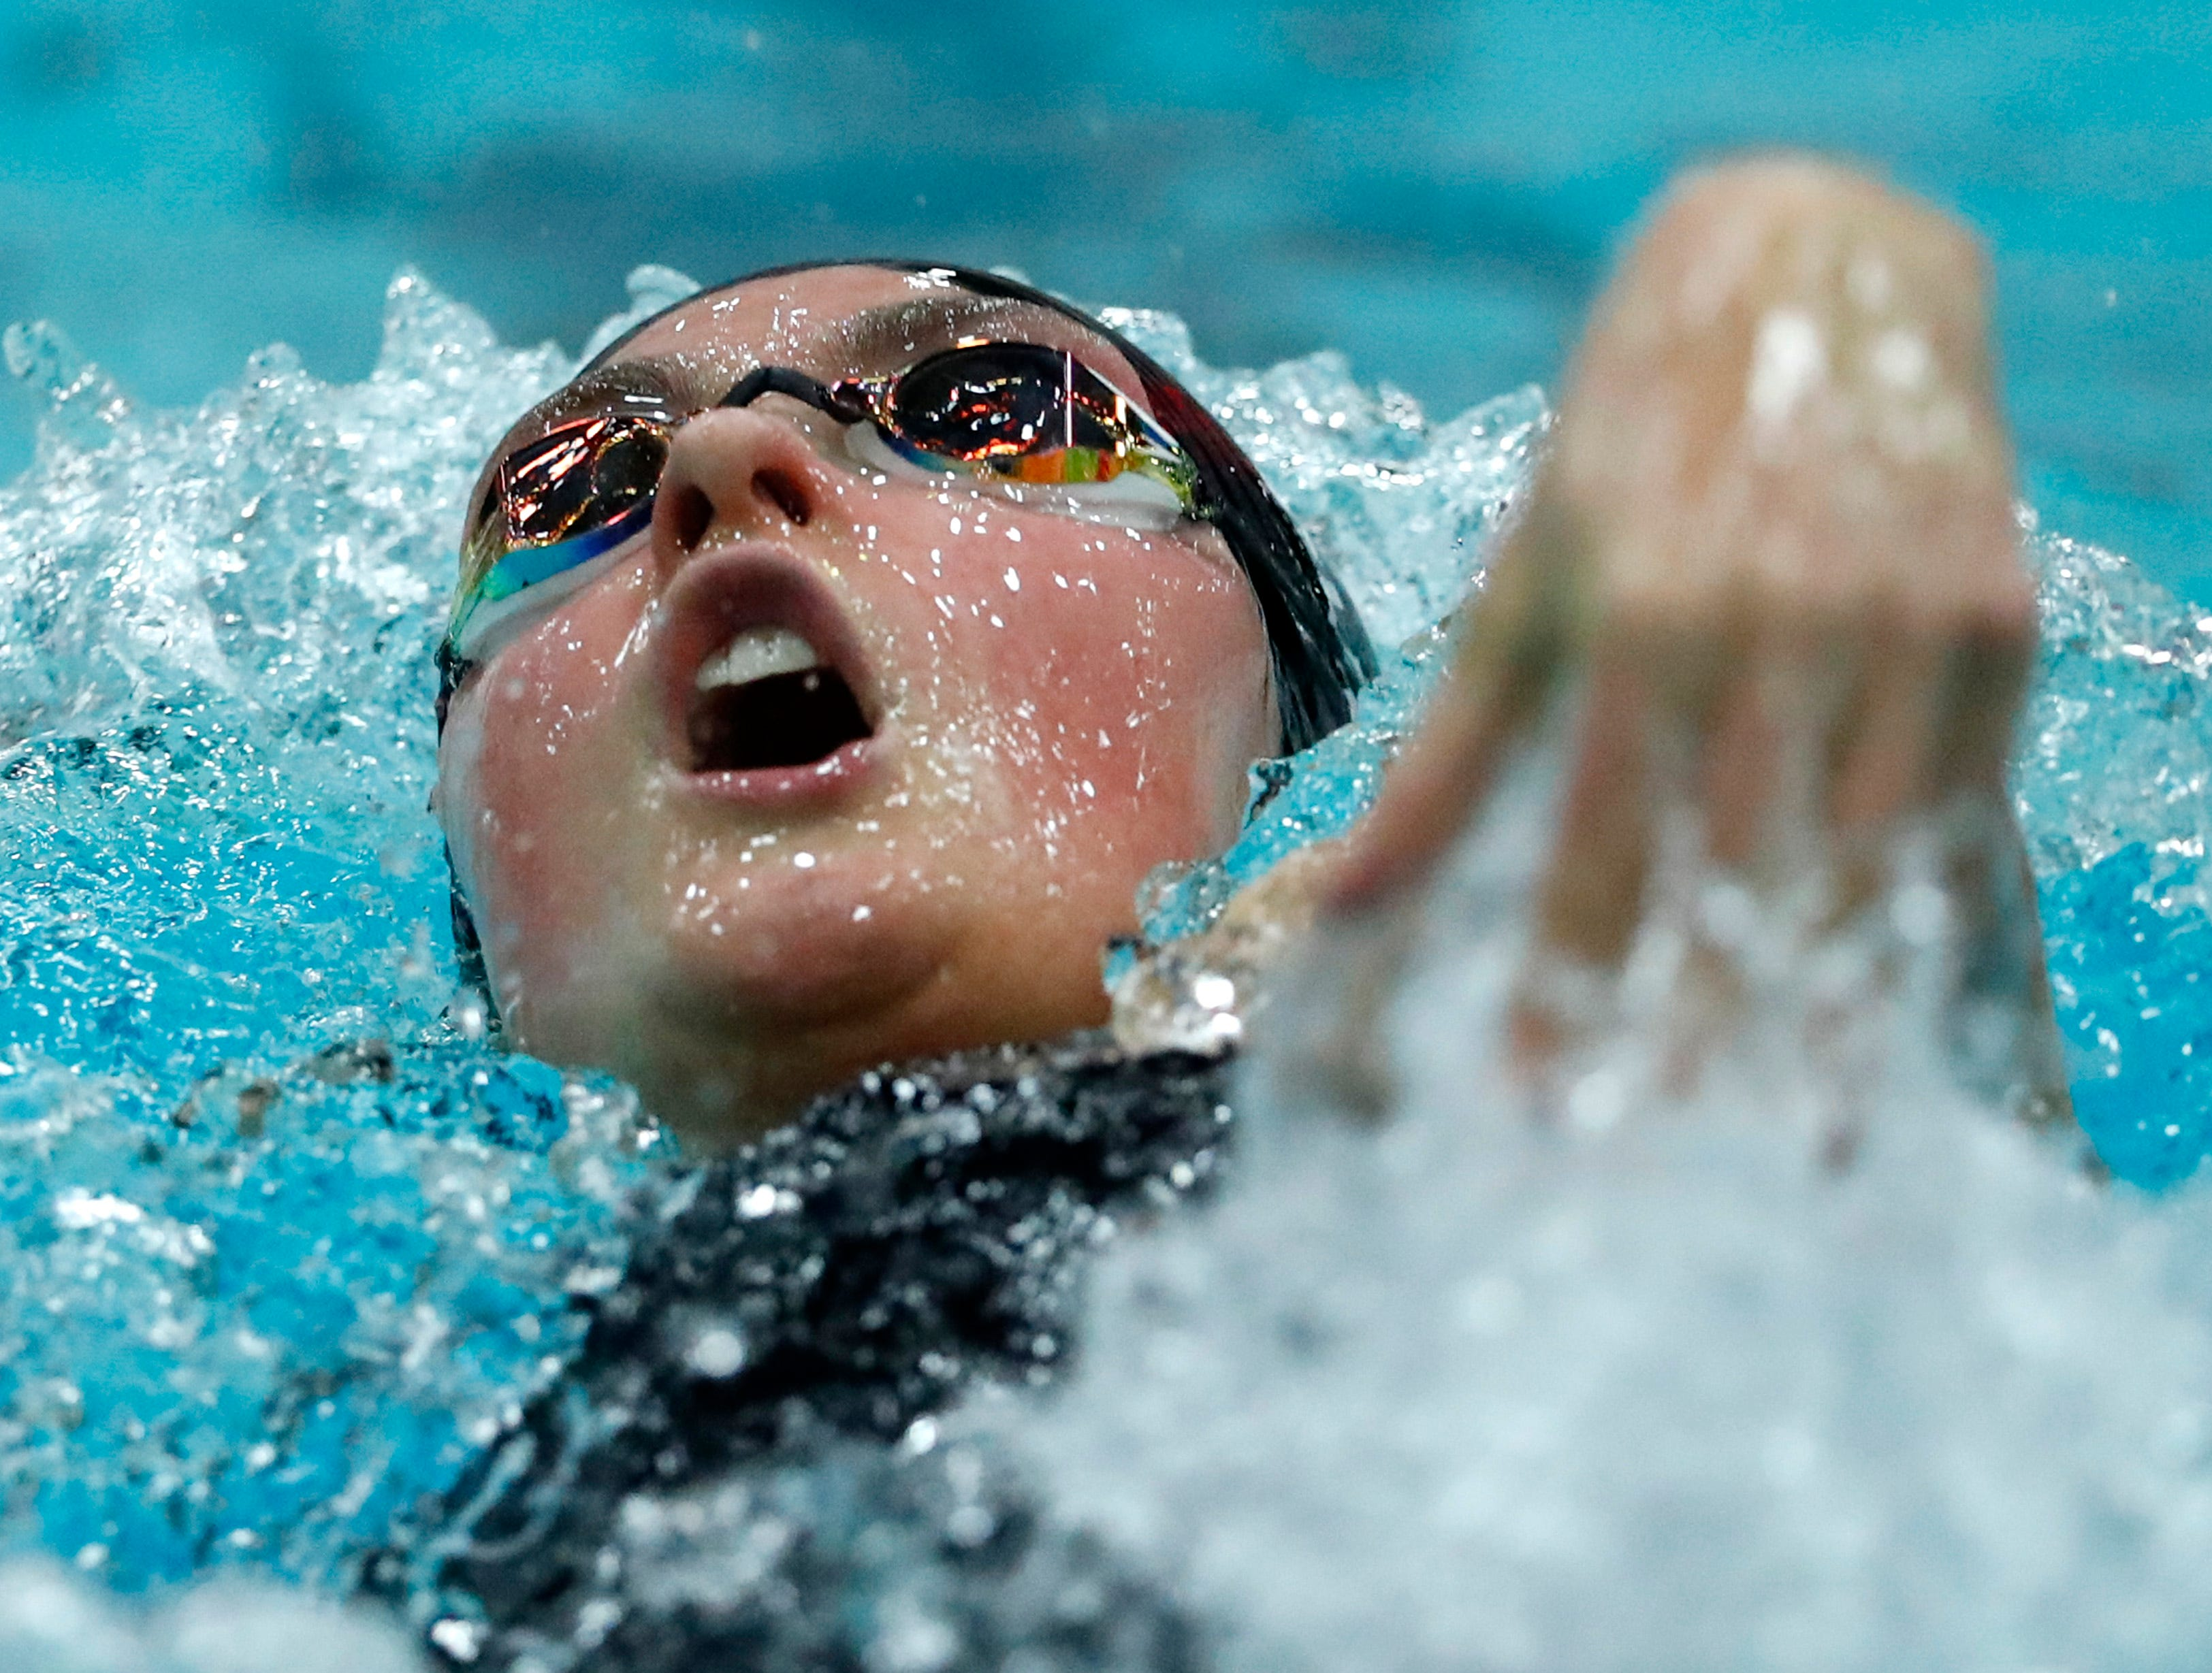 Wausau East's Emma Clifford races in the 100 yard backstroke during the WIAA Division 2 State Swimming and Diving meet Friday, Nov. 9, 2018, at the UW Natatorium in Madison, Wis.Danny Damiani/USA TODAY NETWORK-Wisconsin